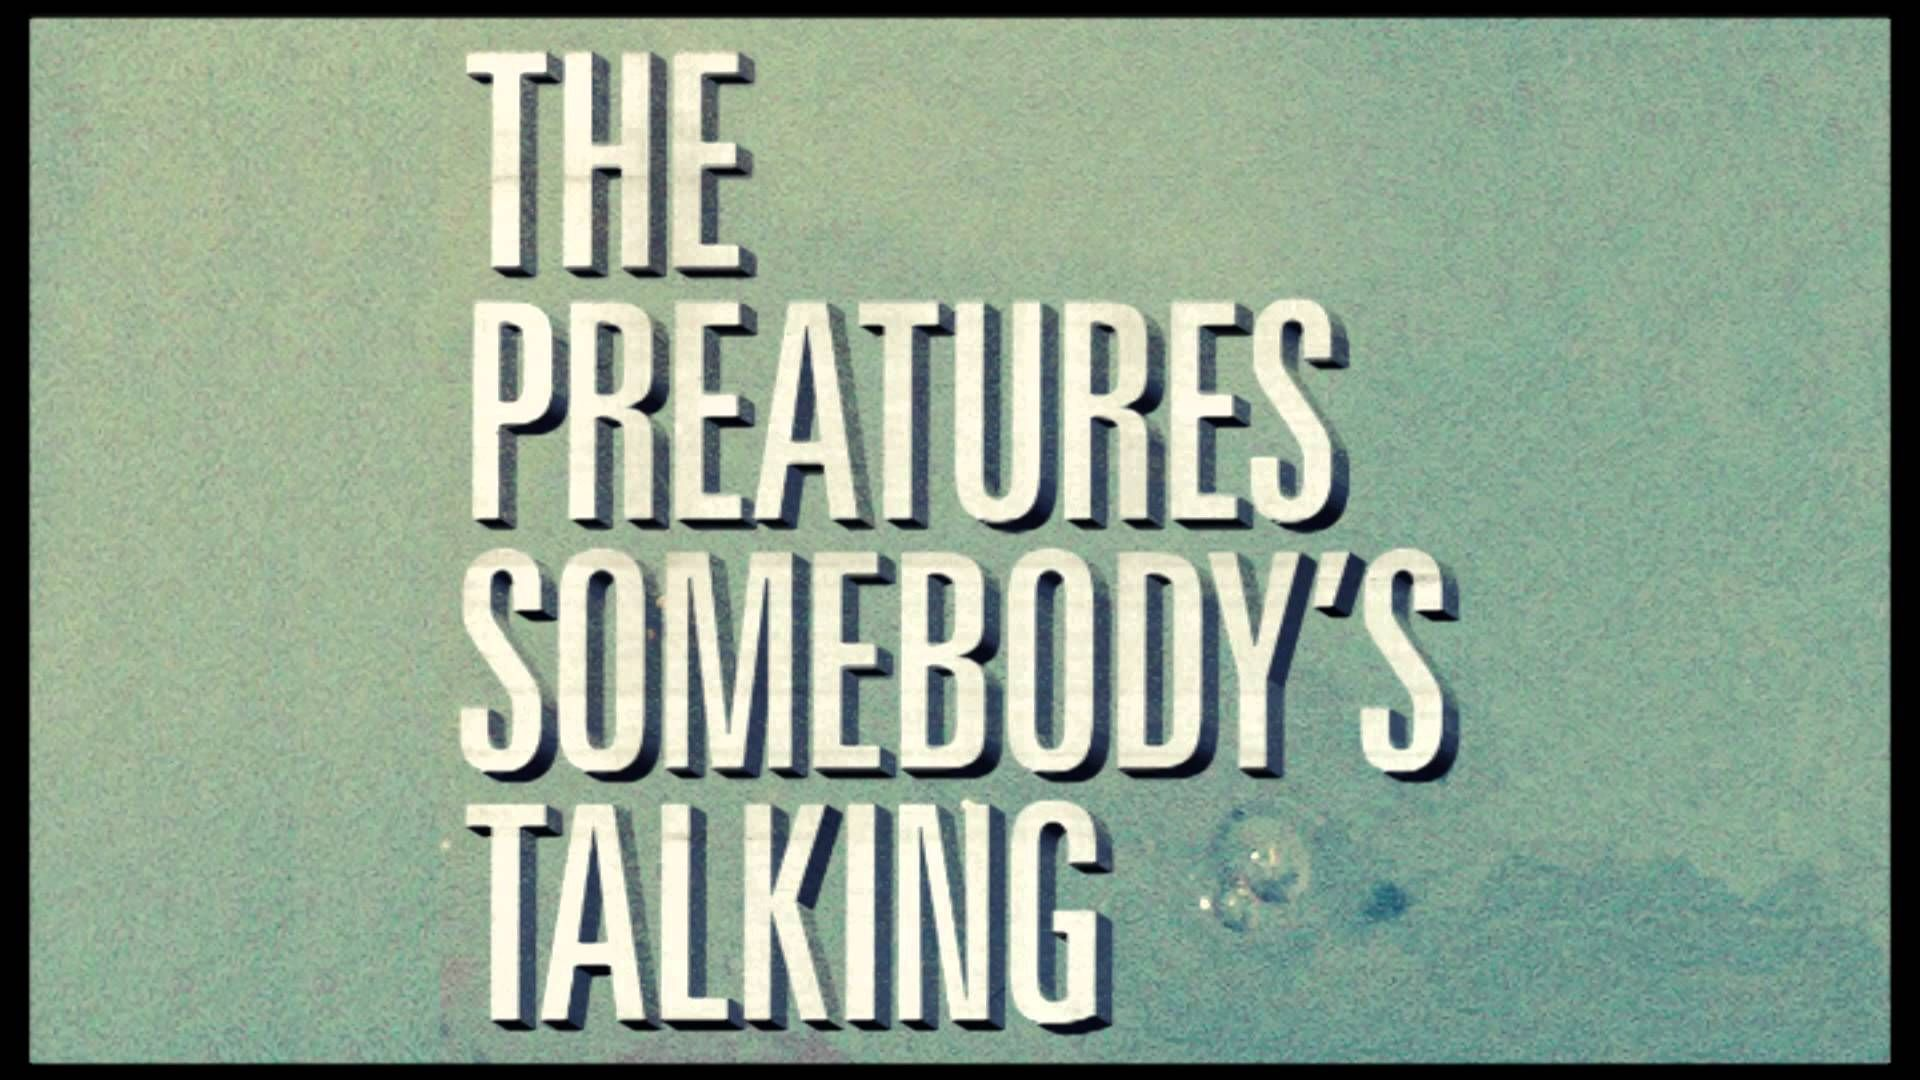 The Preatures - Somebodys Talking (Audio Only)